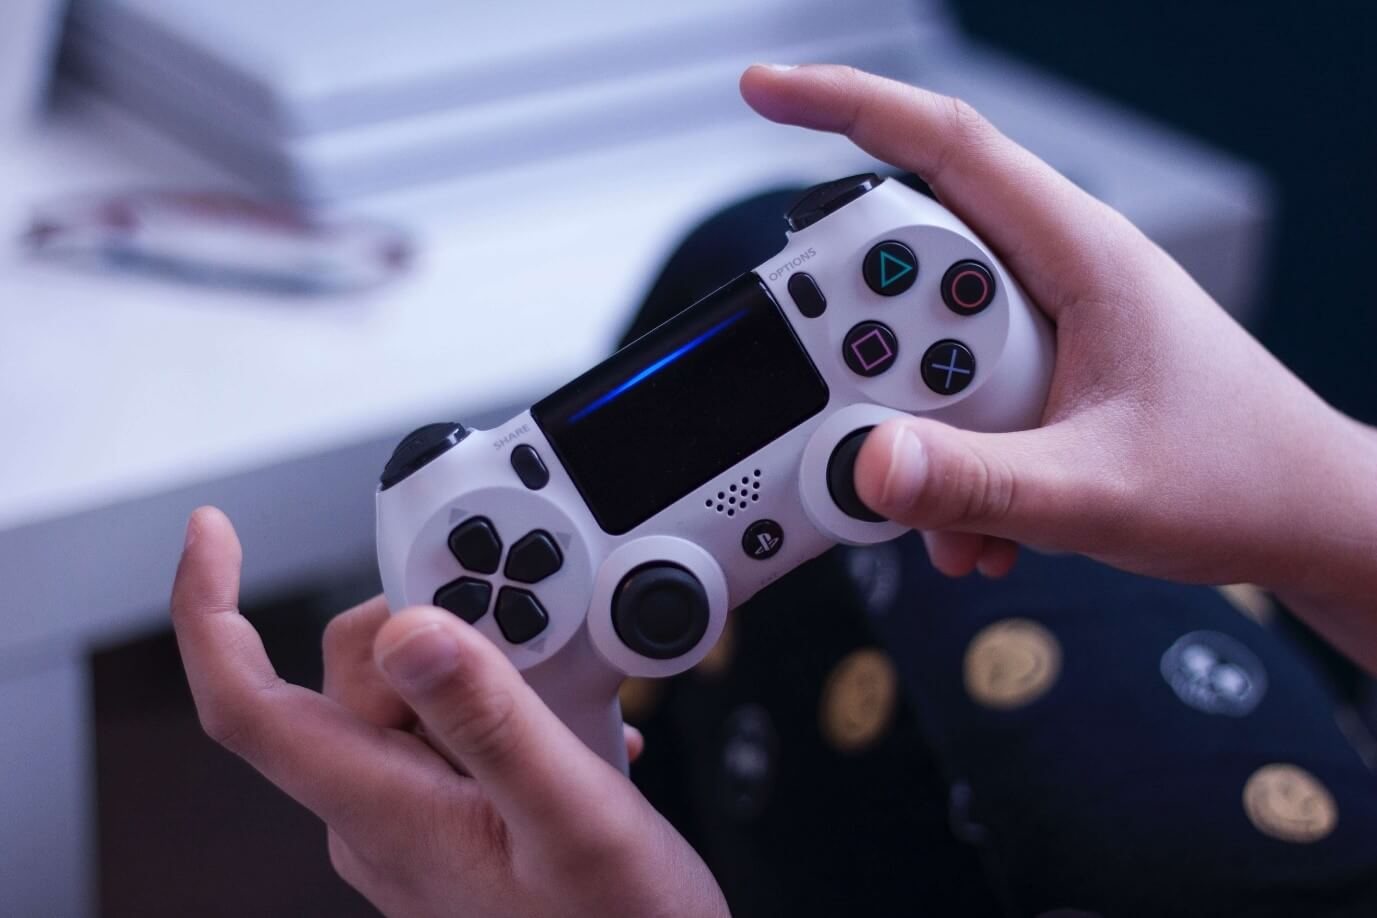 How Using A Joystick While Gaming Can Increase The Fun